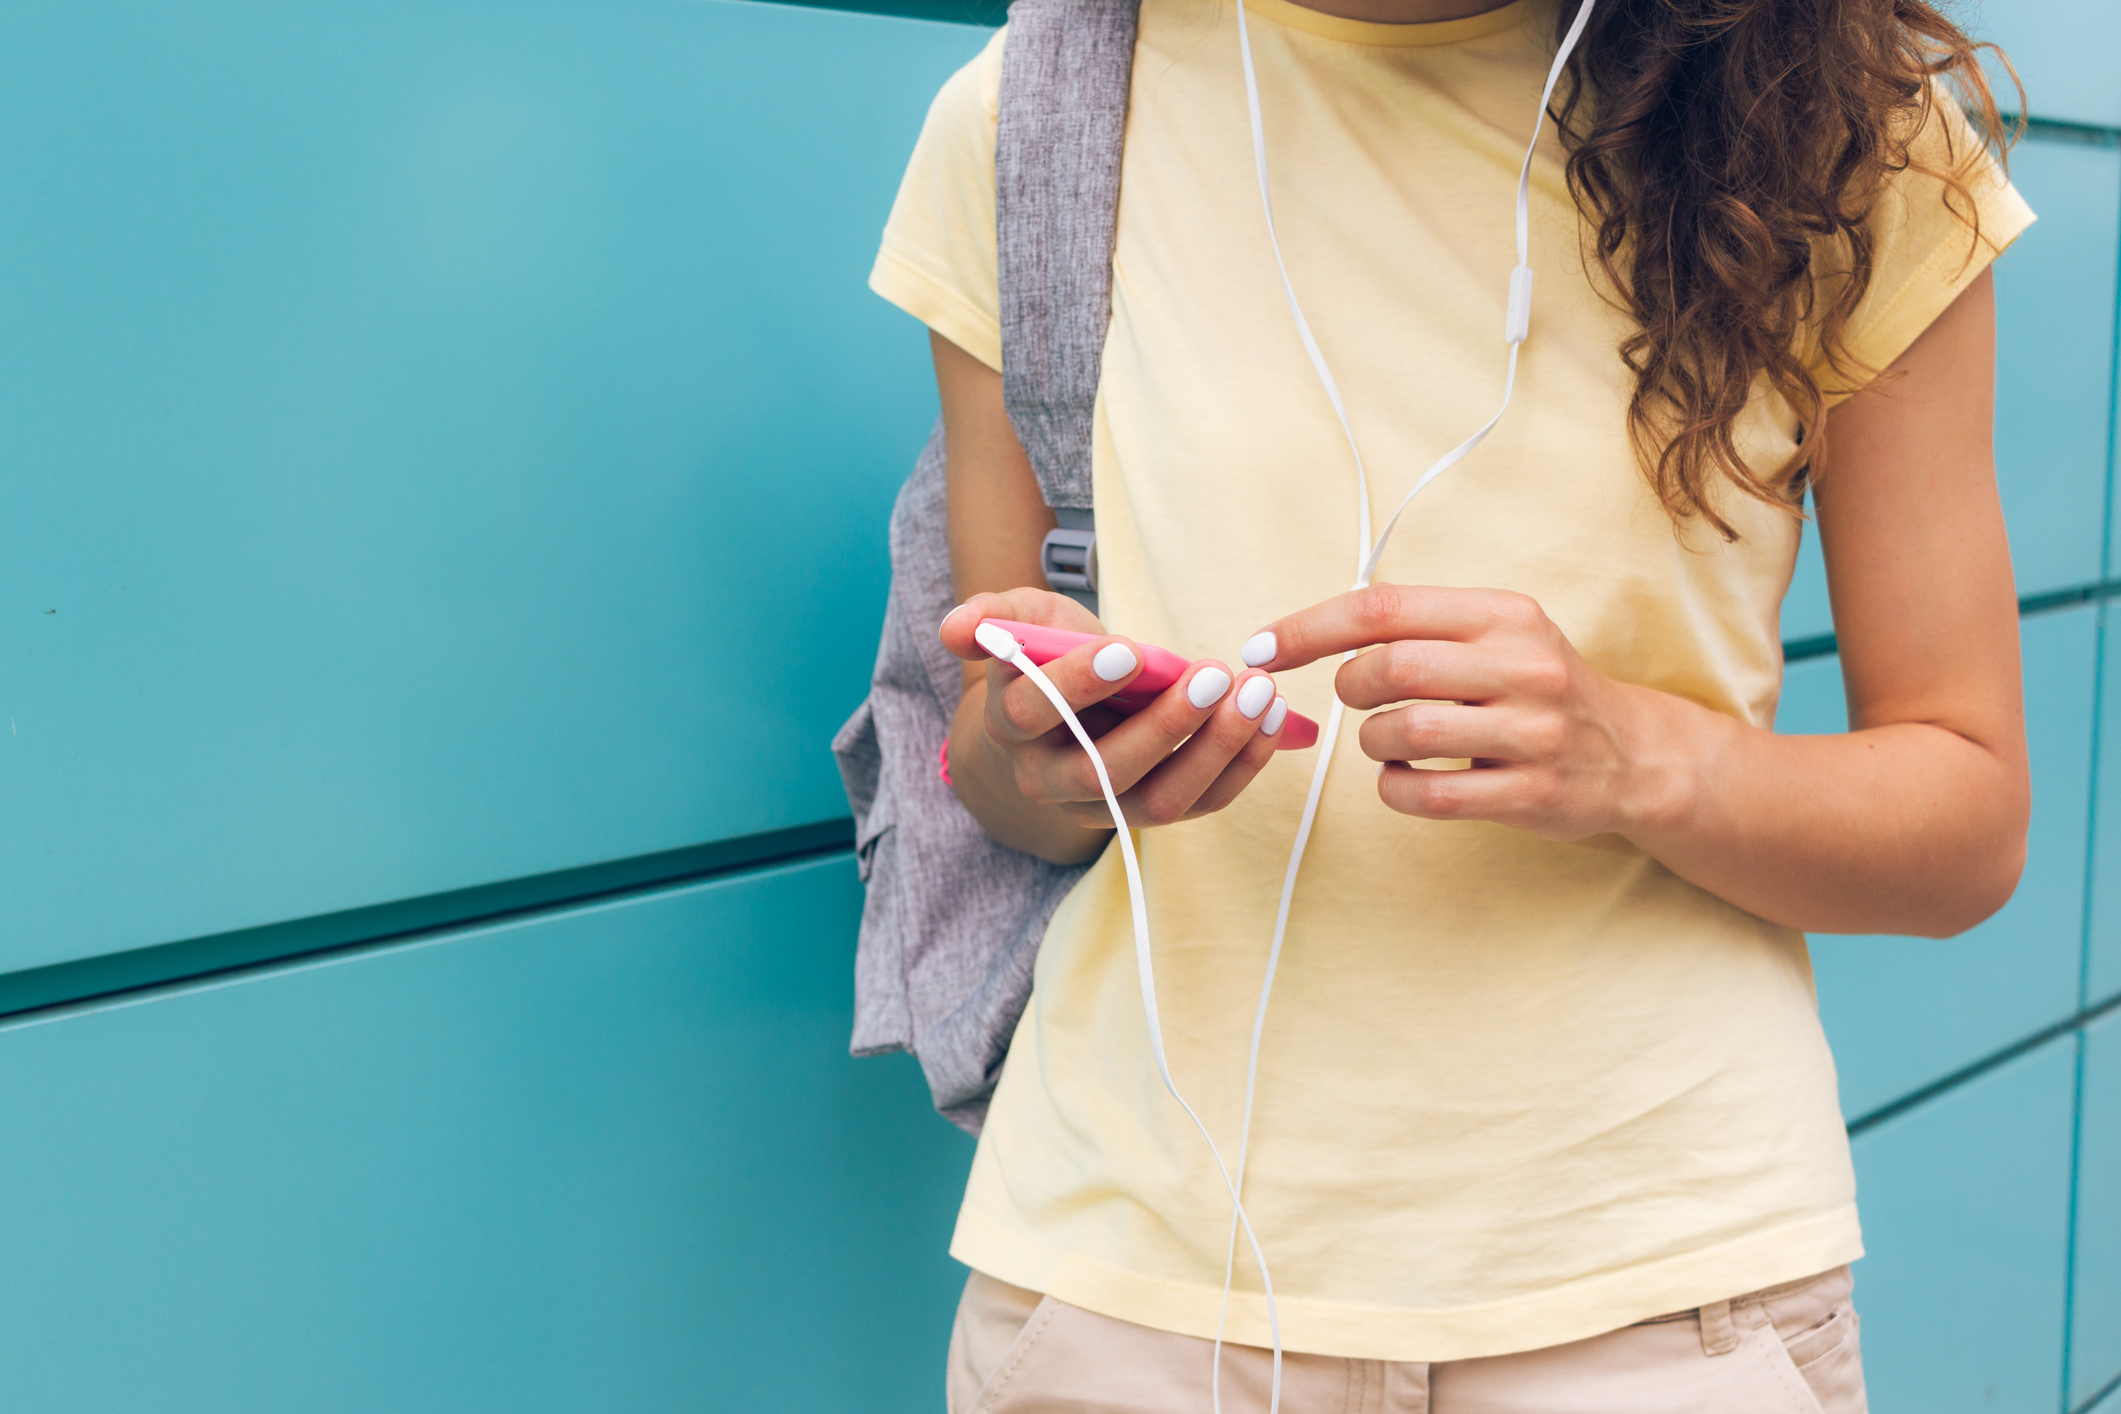 Close-up of female hands with white manicure holding pink mobile phone and headphones outdoors near a blue wall